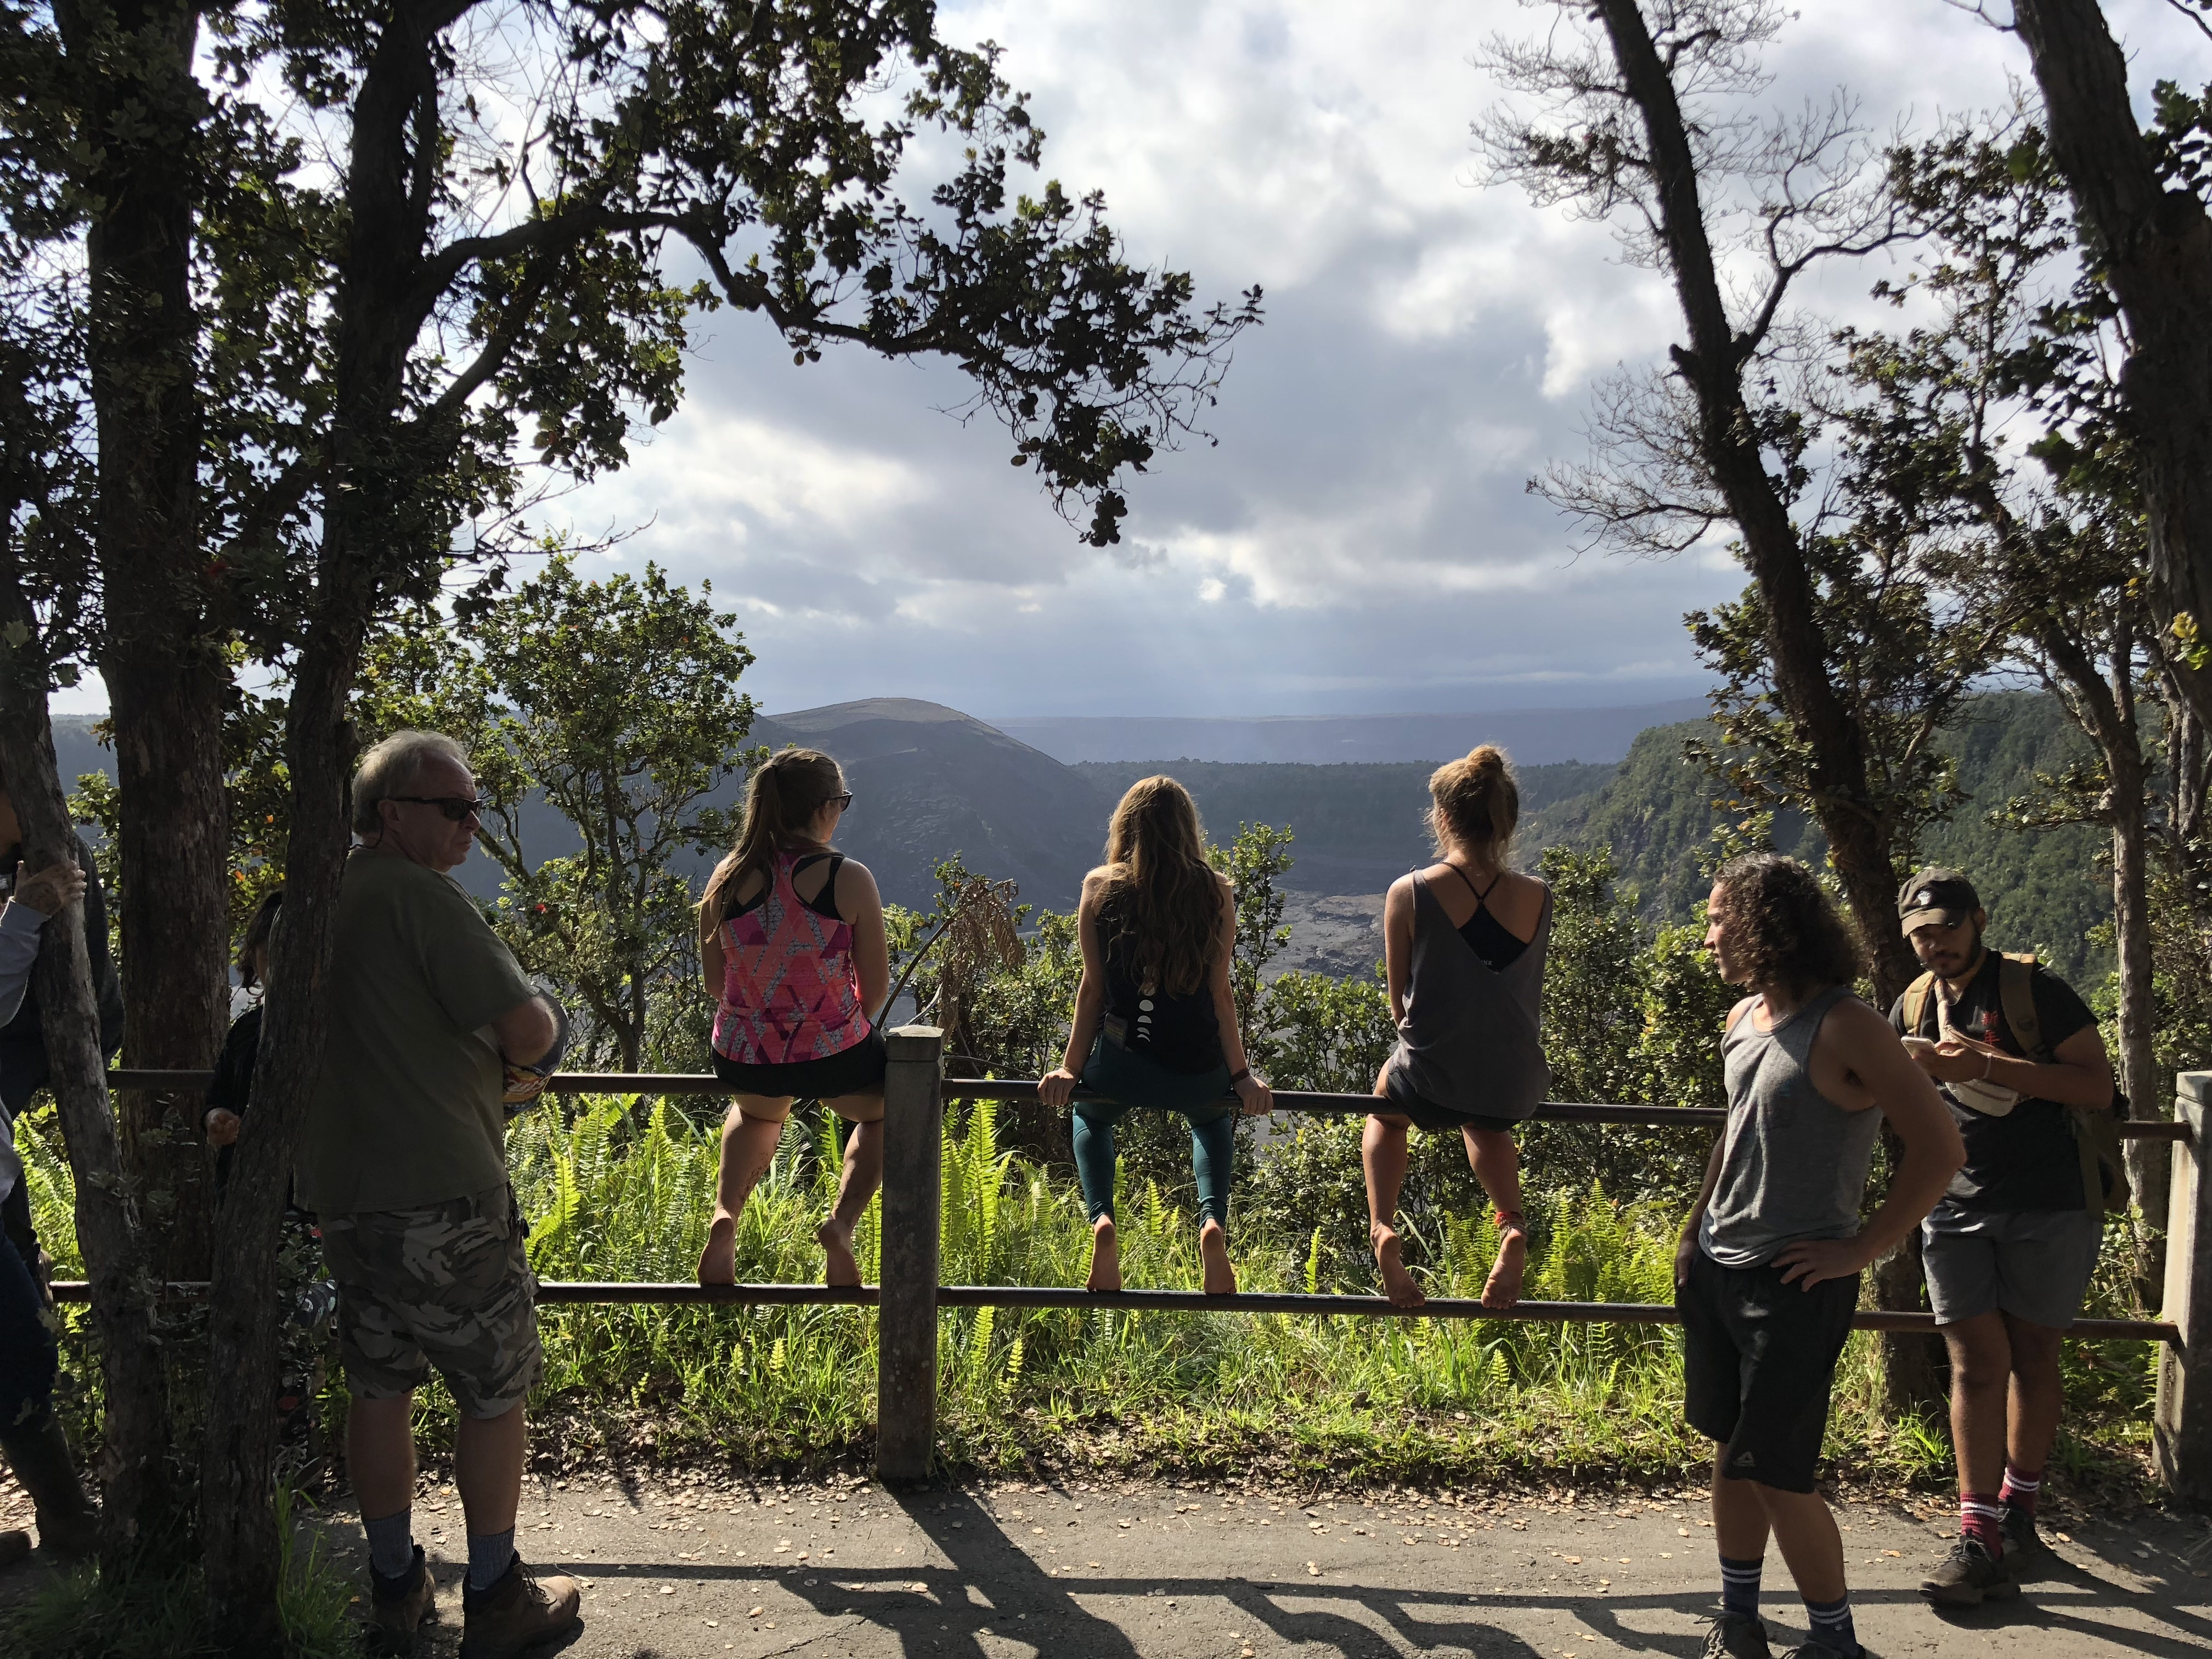 Three students sit on railing overlooking Kīlauea volcano crater while three students stand gazing